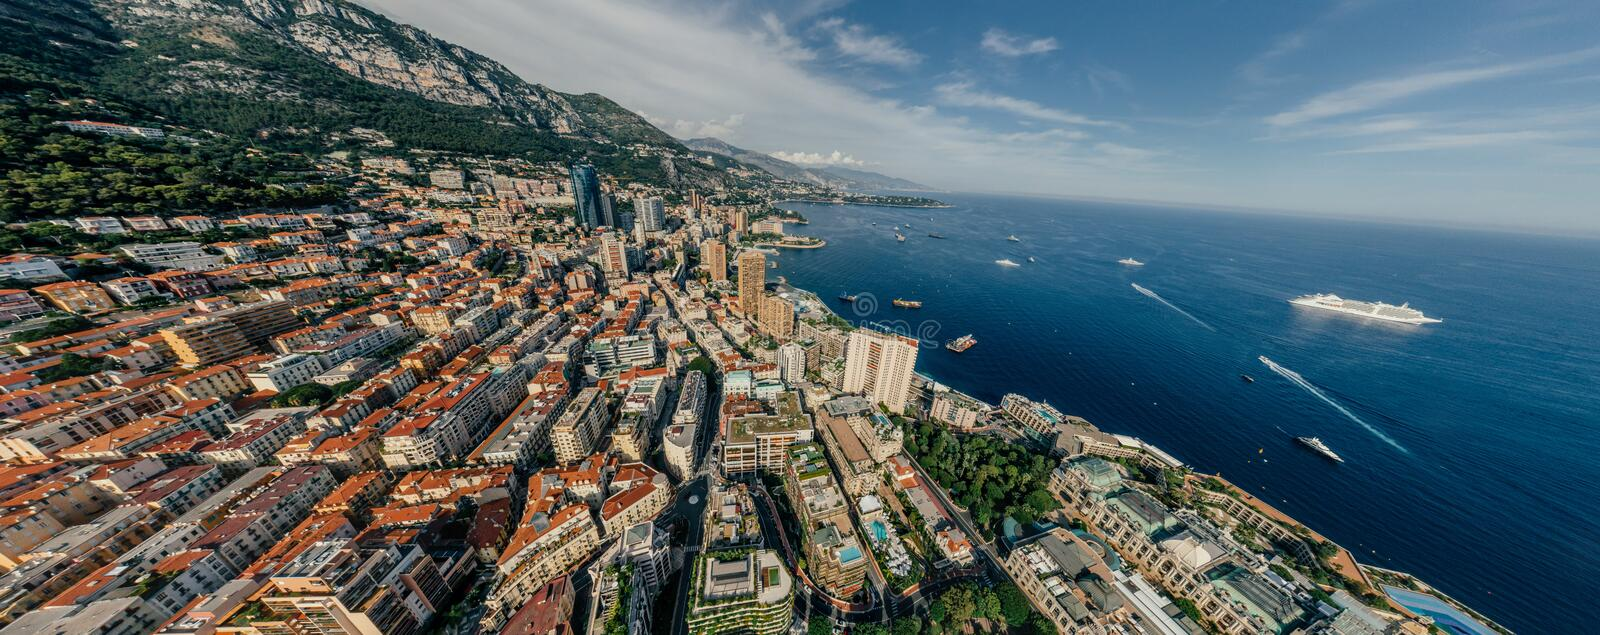 Mountains in Monaco Monte-Carlo city riviera Drone summer photo Air 360 vr virtual reality drone panorama. Sphere Panorama Summer Sea Coastline in Monaco Air stock images